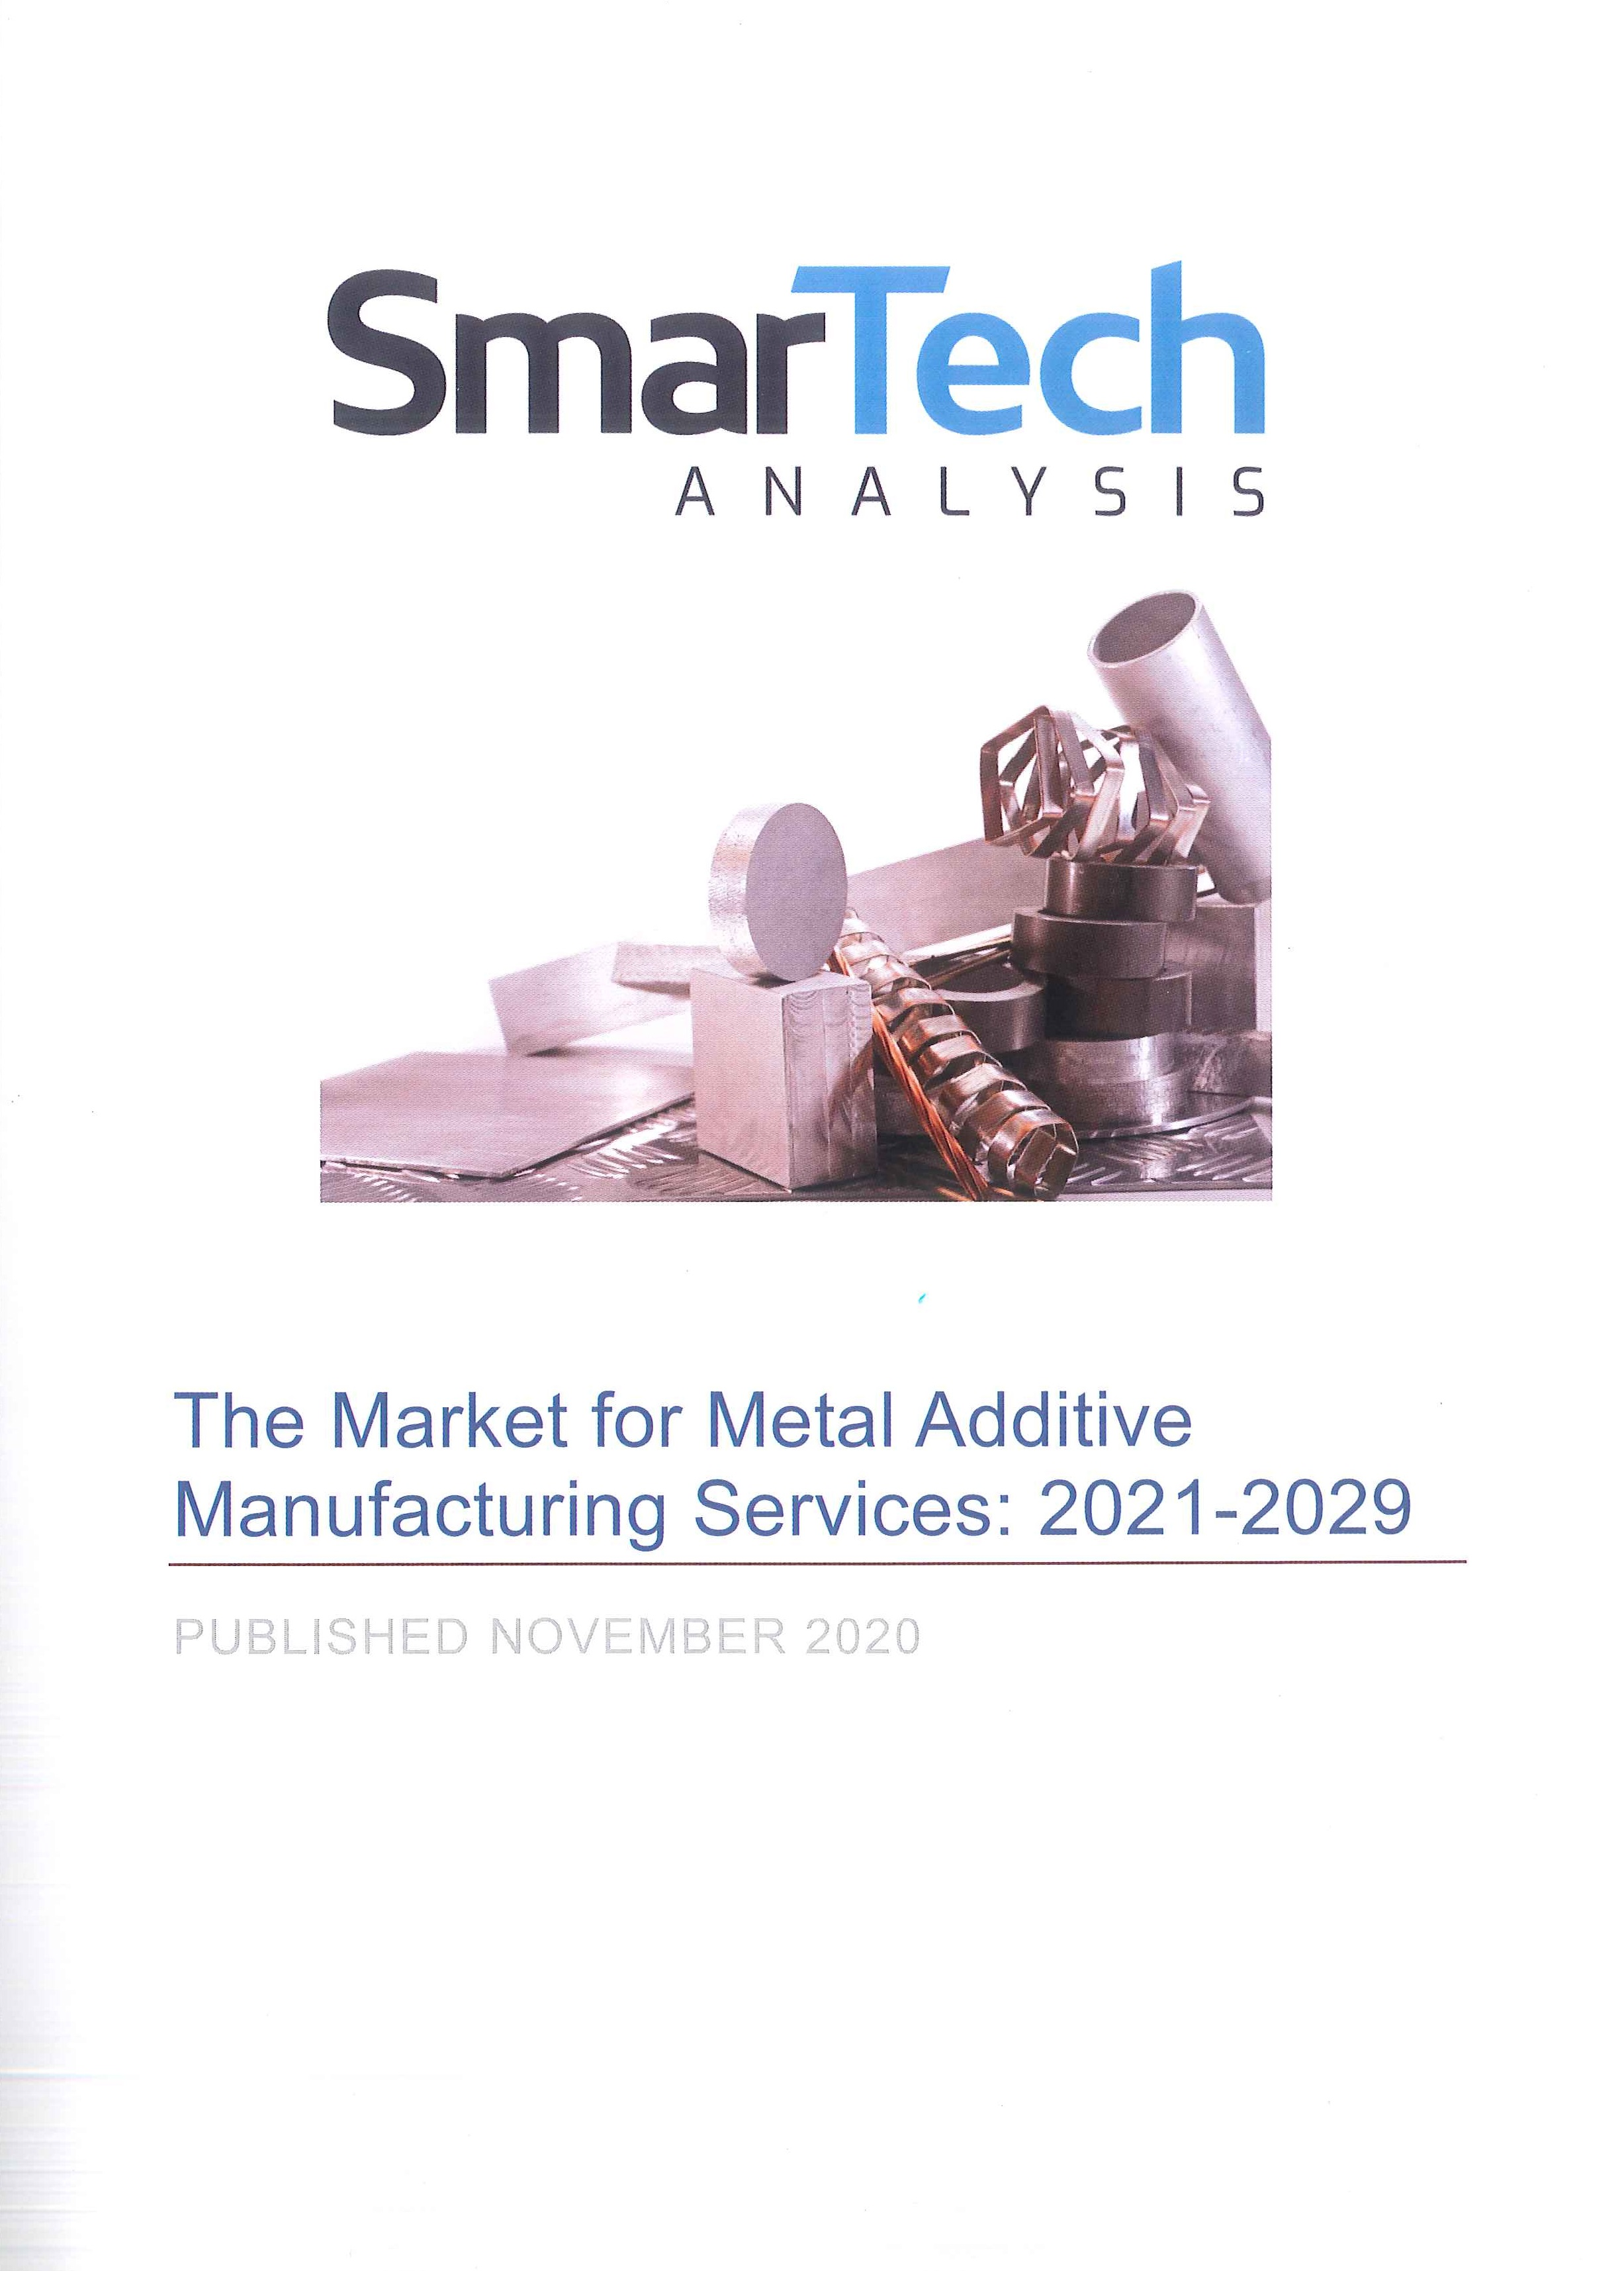 The Market for metal additive manufacturing services:2021-2029